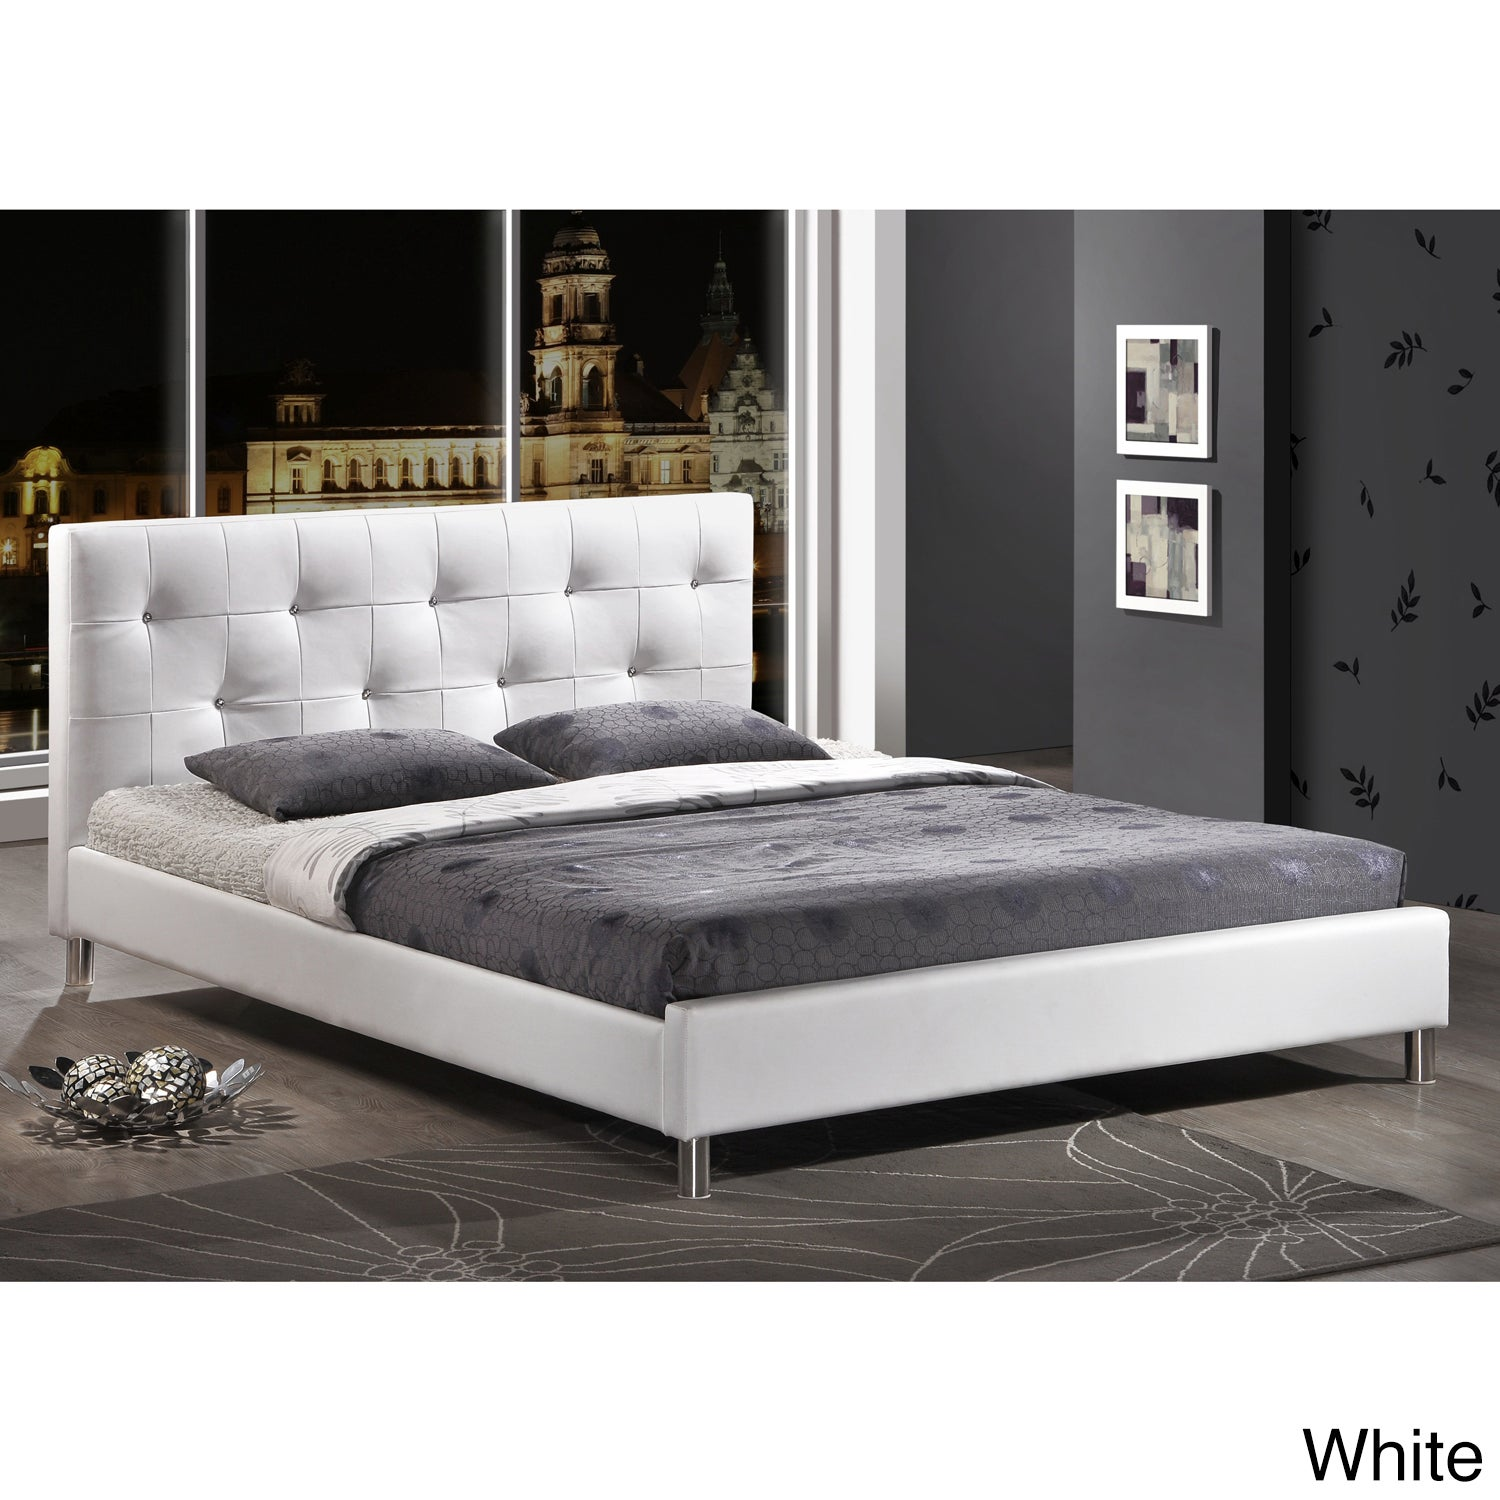 Barbara Modern Full Size Crystal On Tufted Bed